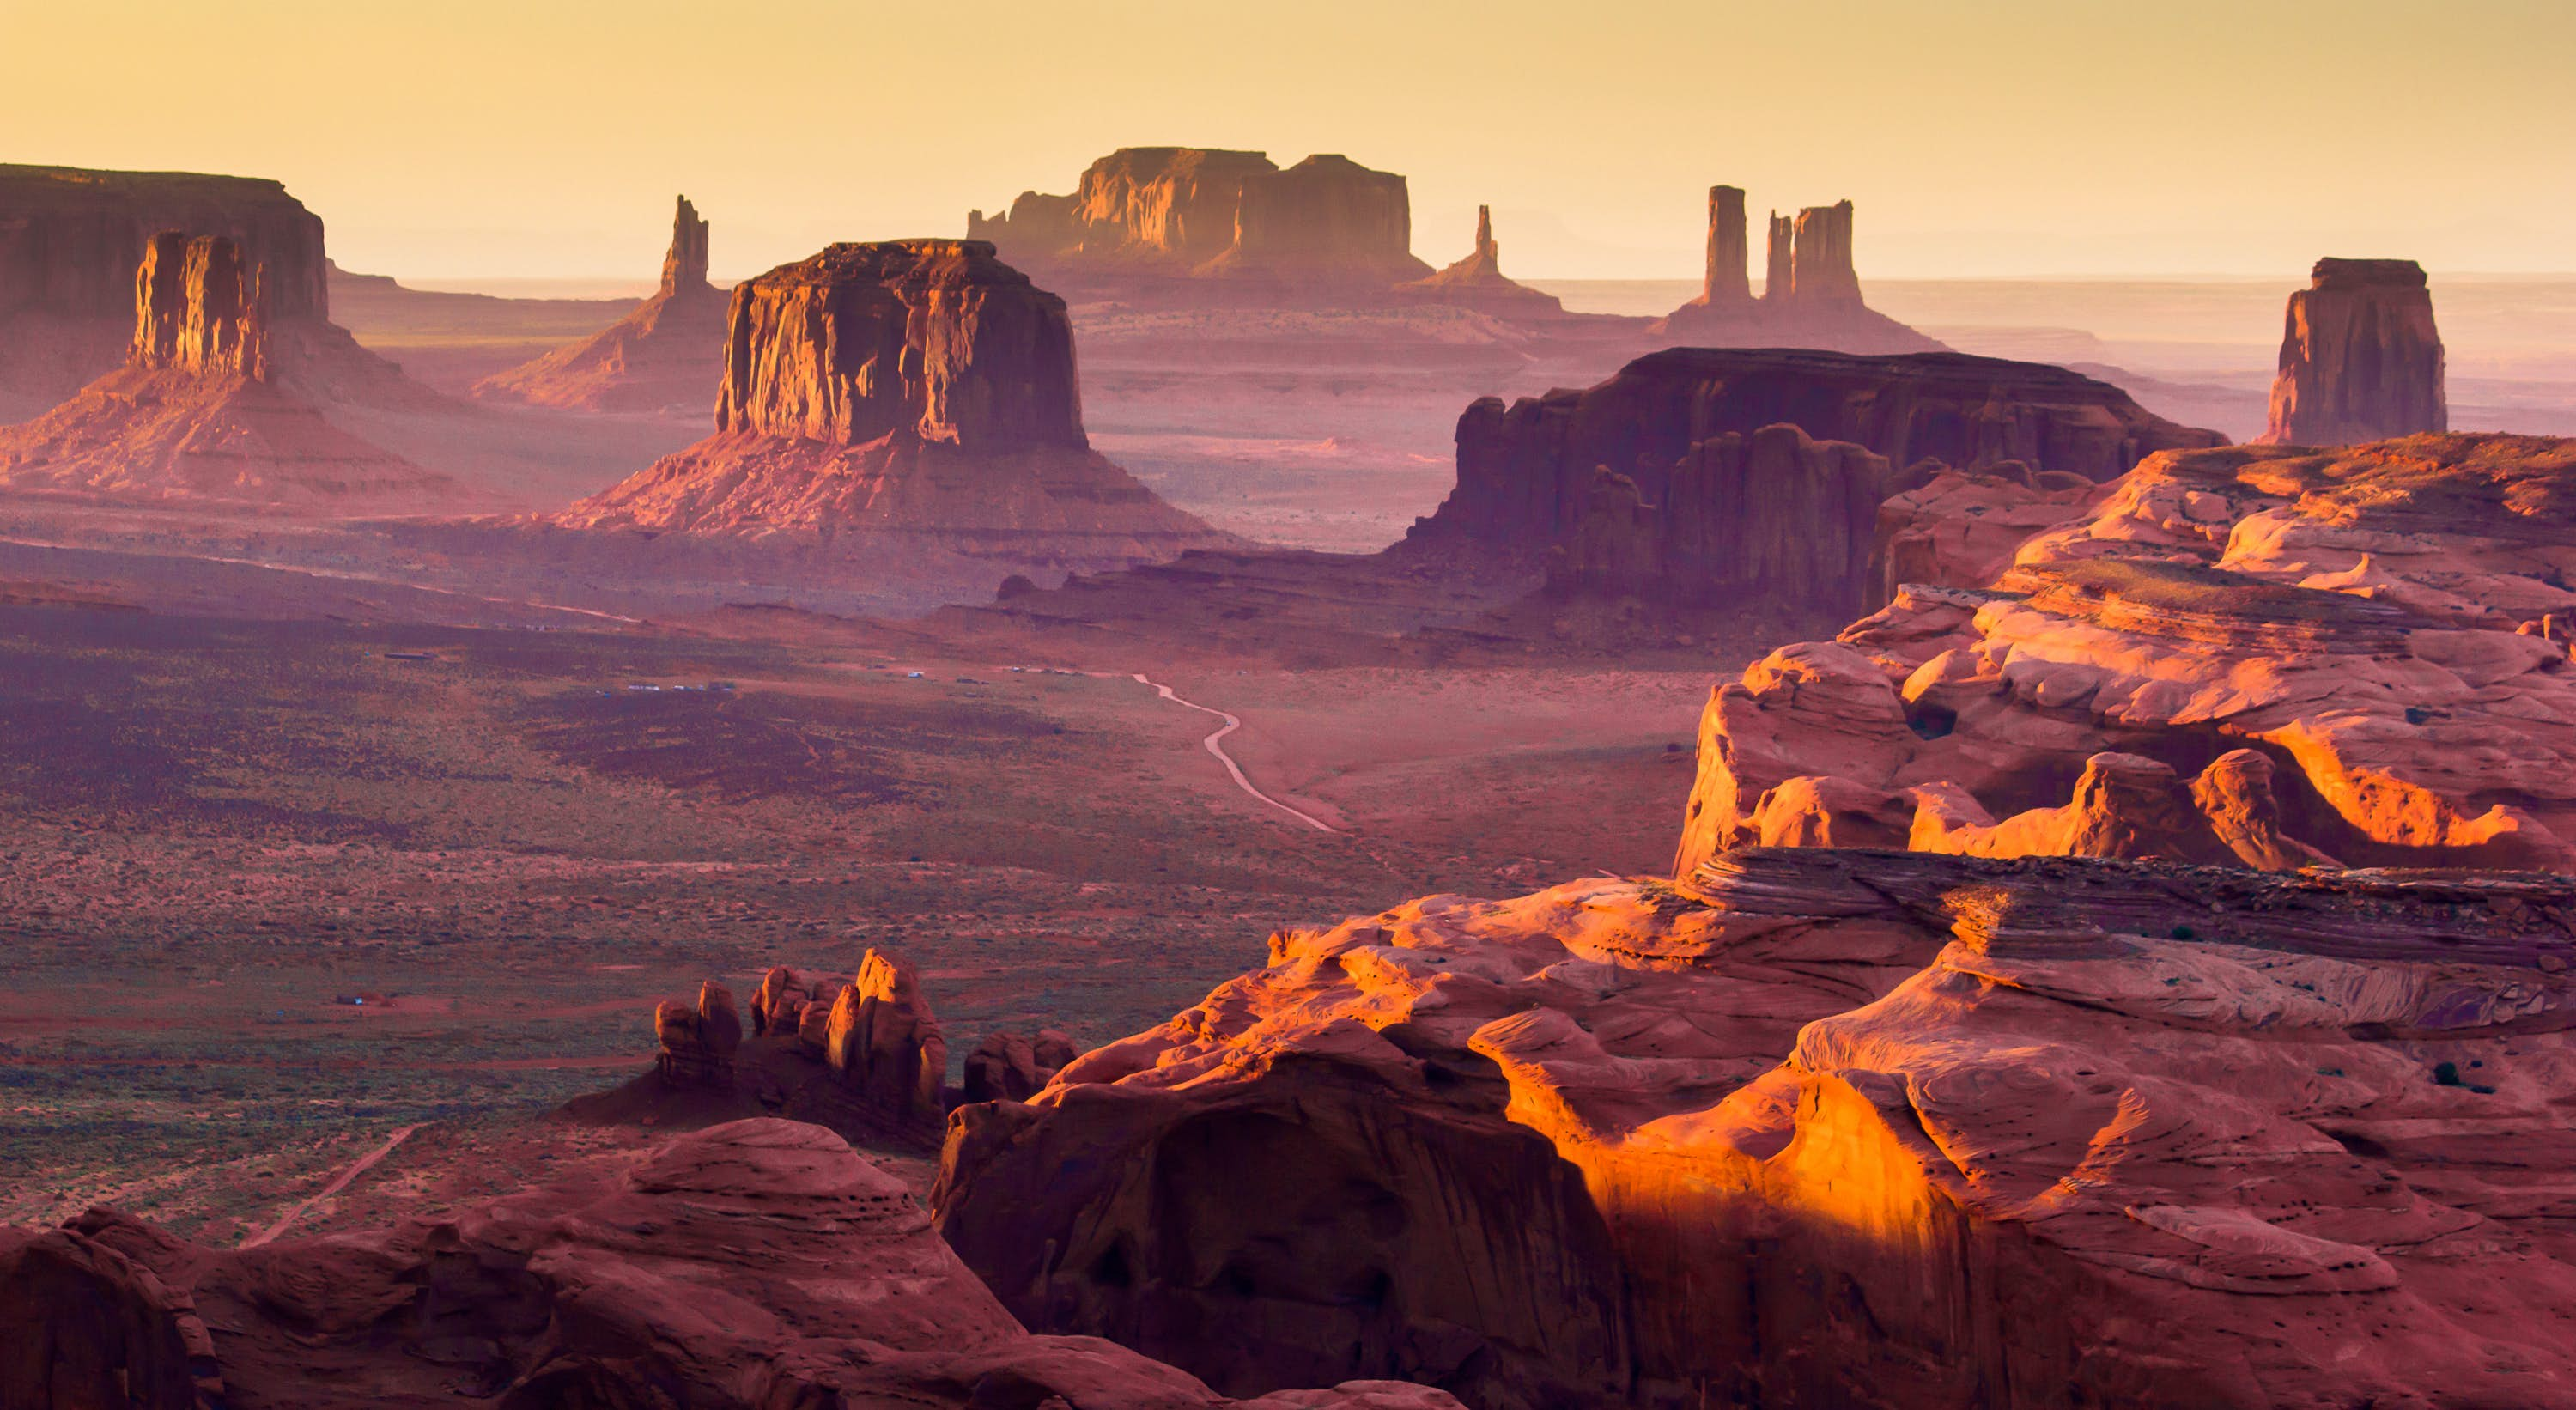 Monument Valley Navajo Tribal Park travel | USA - Lonely Planet